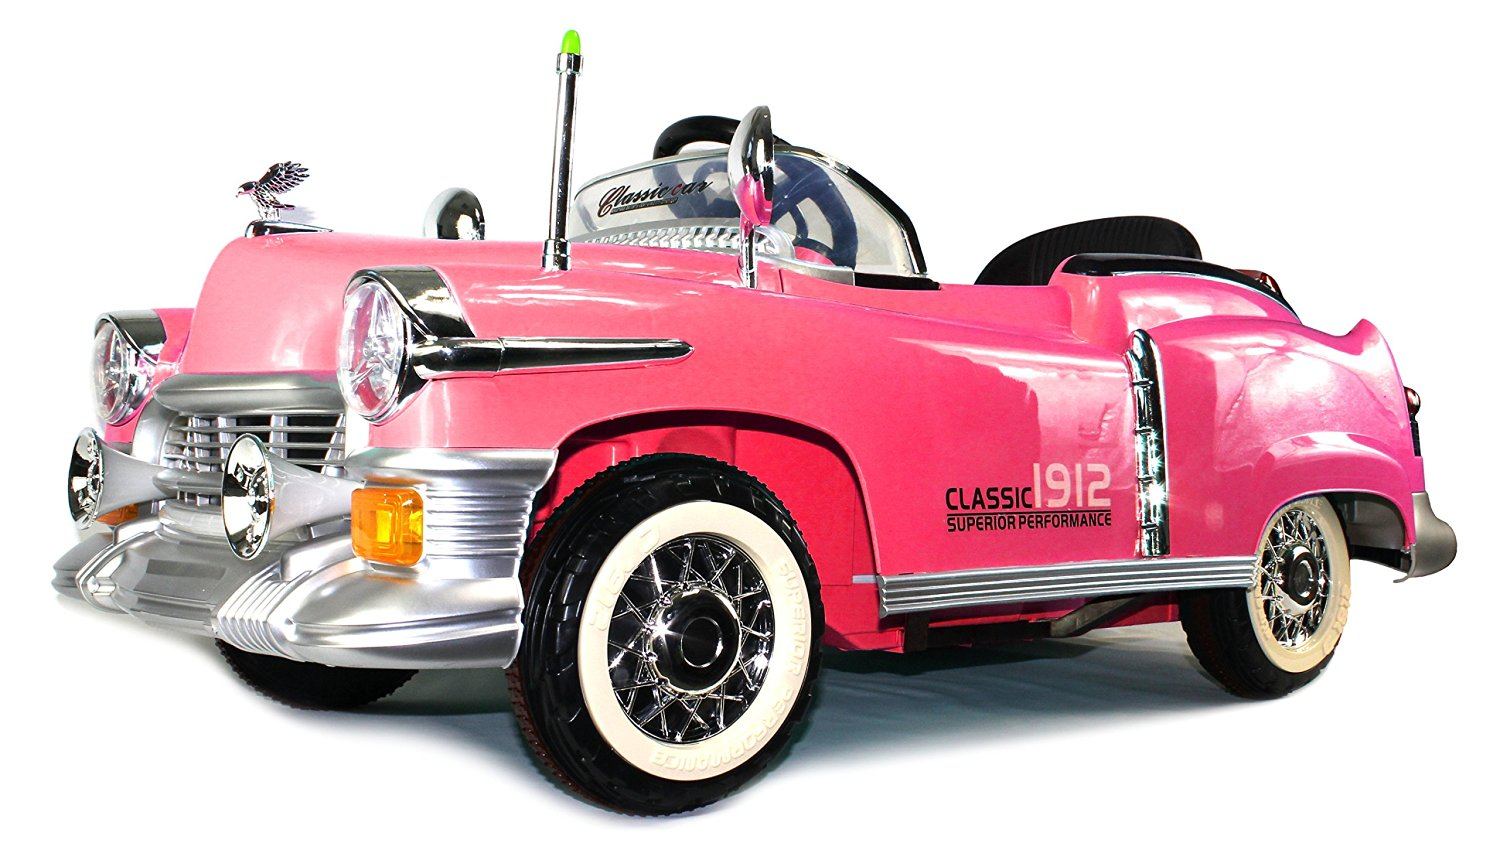 Classic 1912 Coupe Cruiser Children's Kid's Electric Powered Rechargeable Remote Control Ride On Car w/ MP3 Player, Control by Steering Wheel or by Remote Control (Pink)